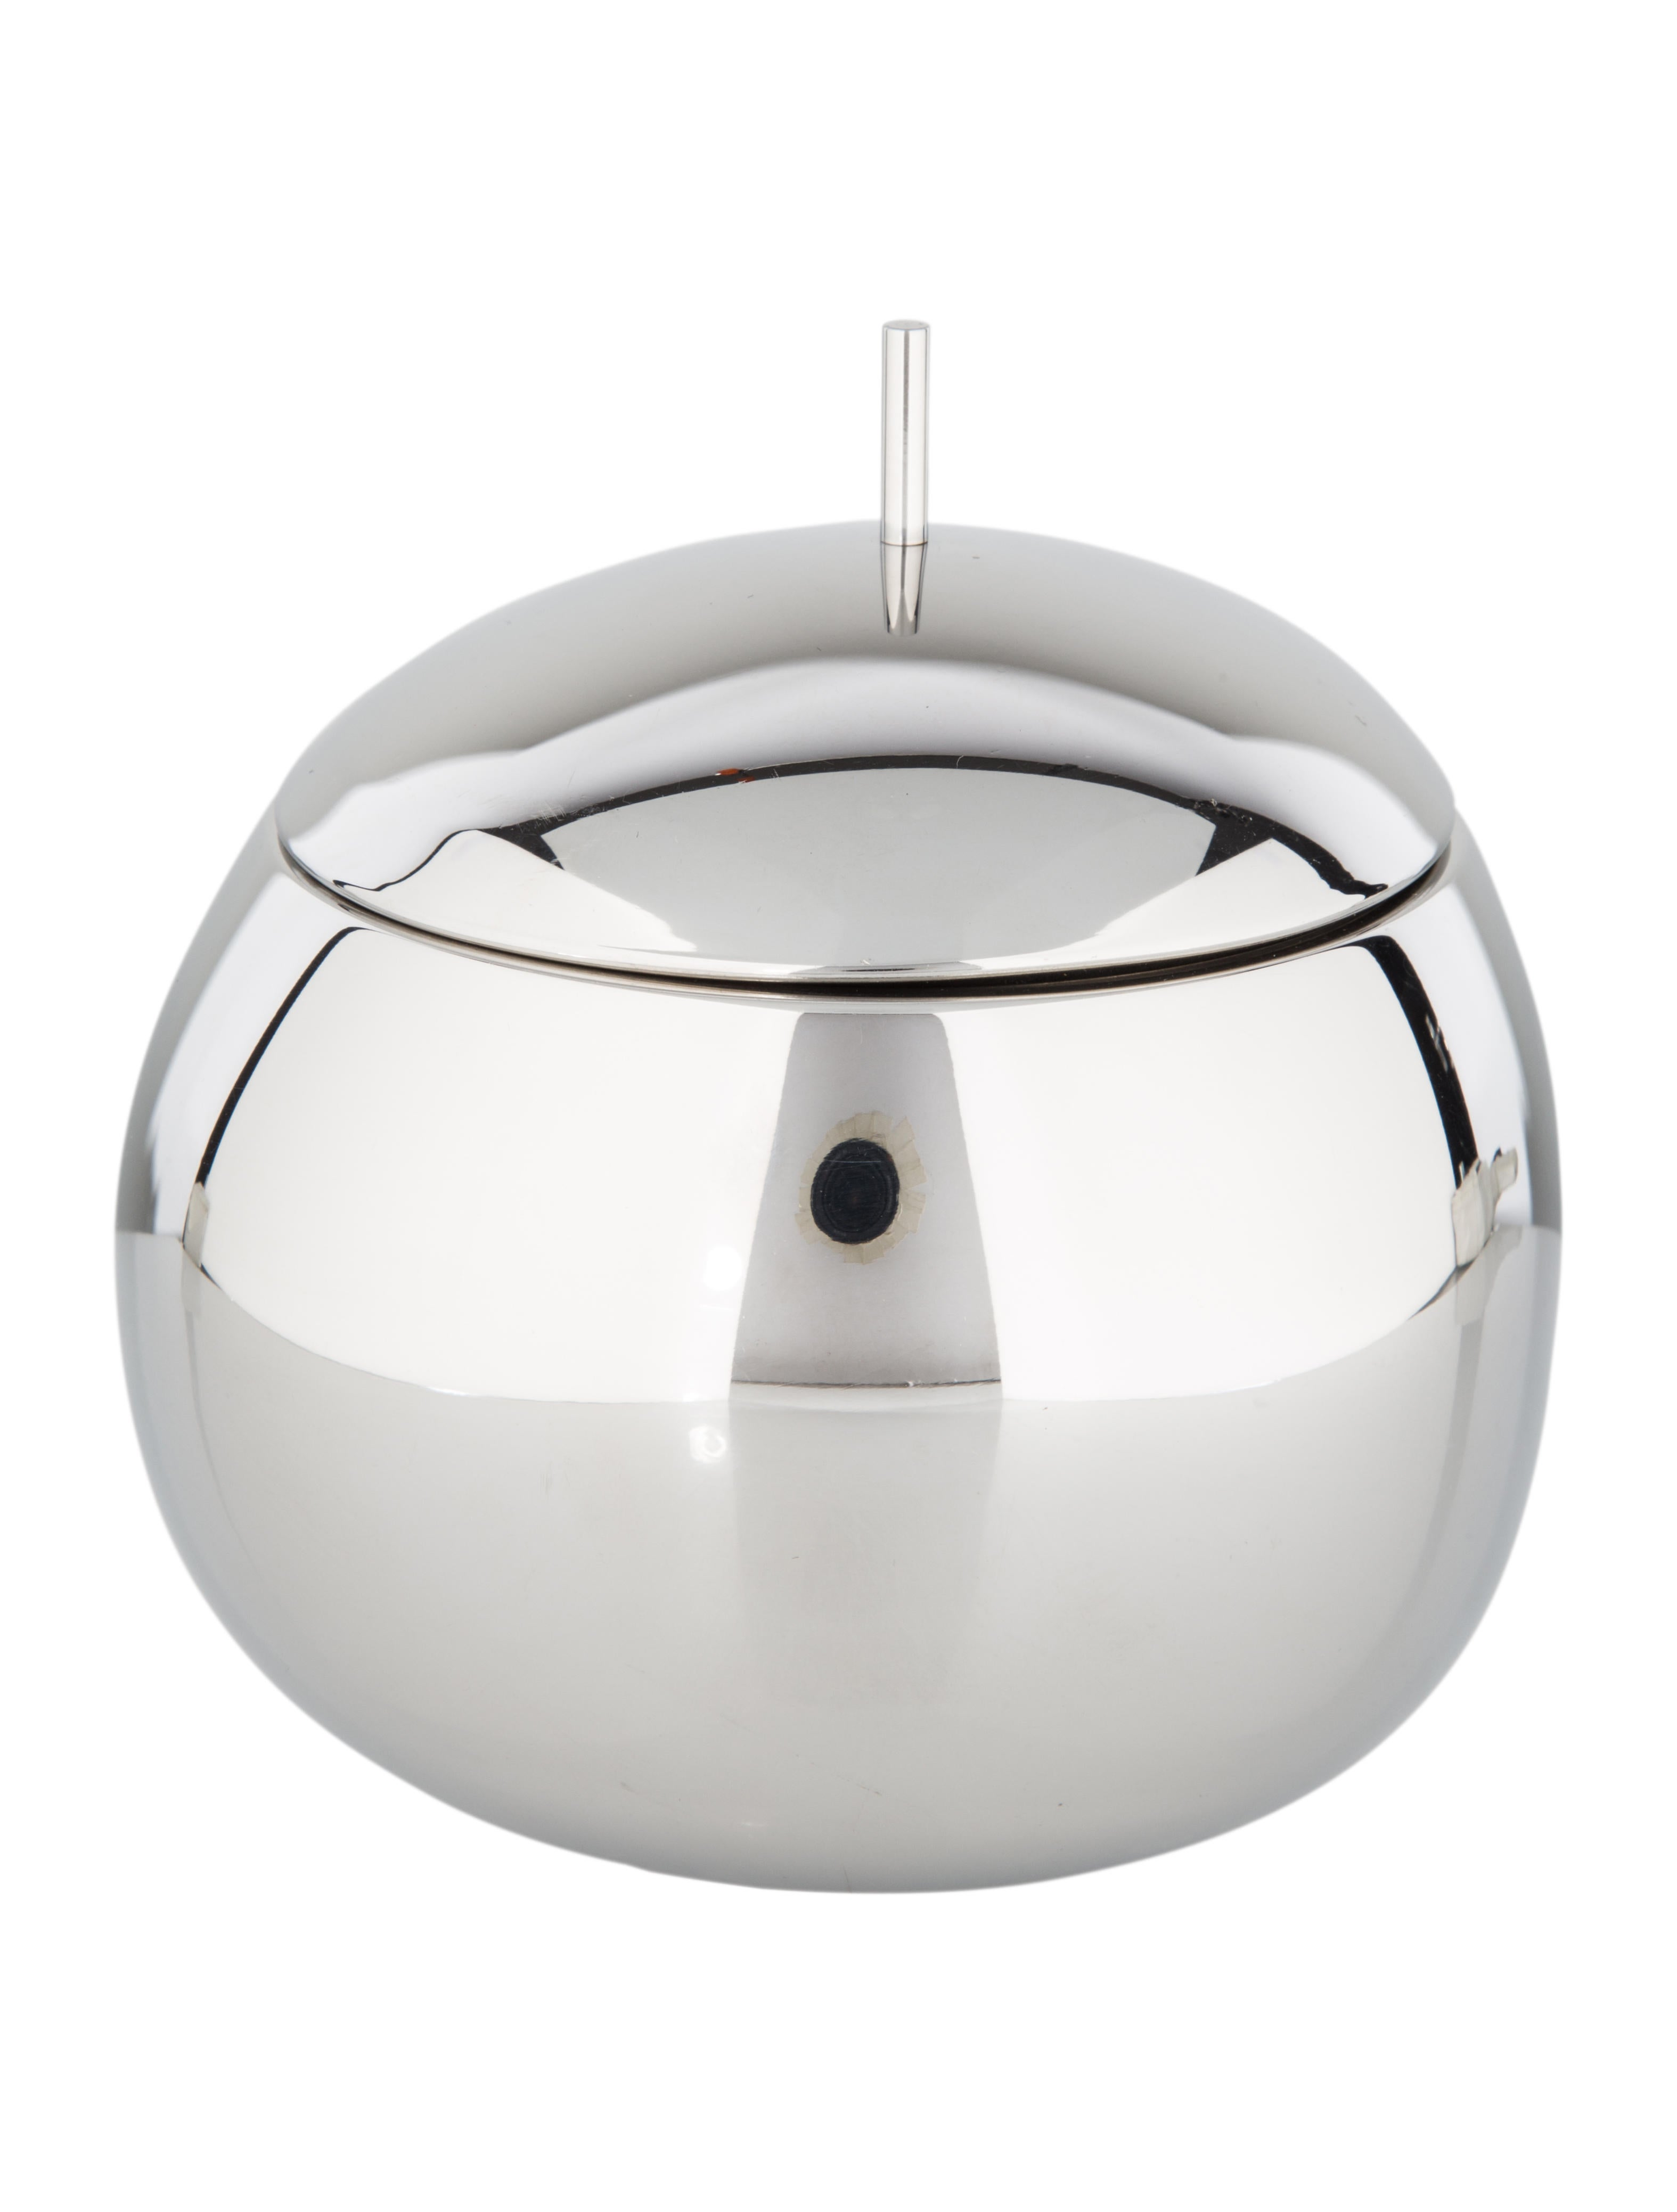 Alessi fruit basket kitchen box tabletop and kitchen aei20258 the realreal - Alessi fruit basket ...